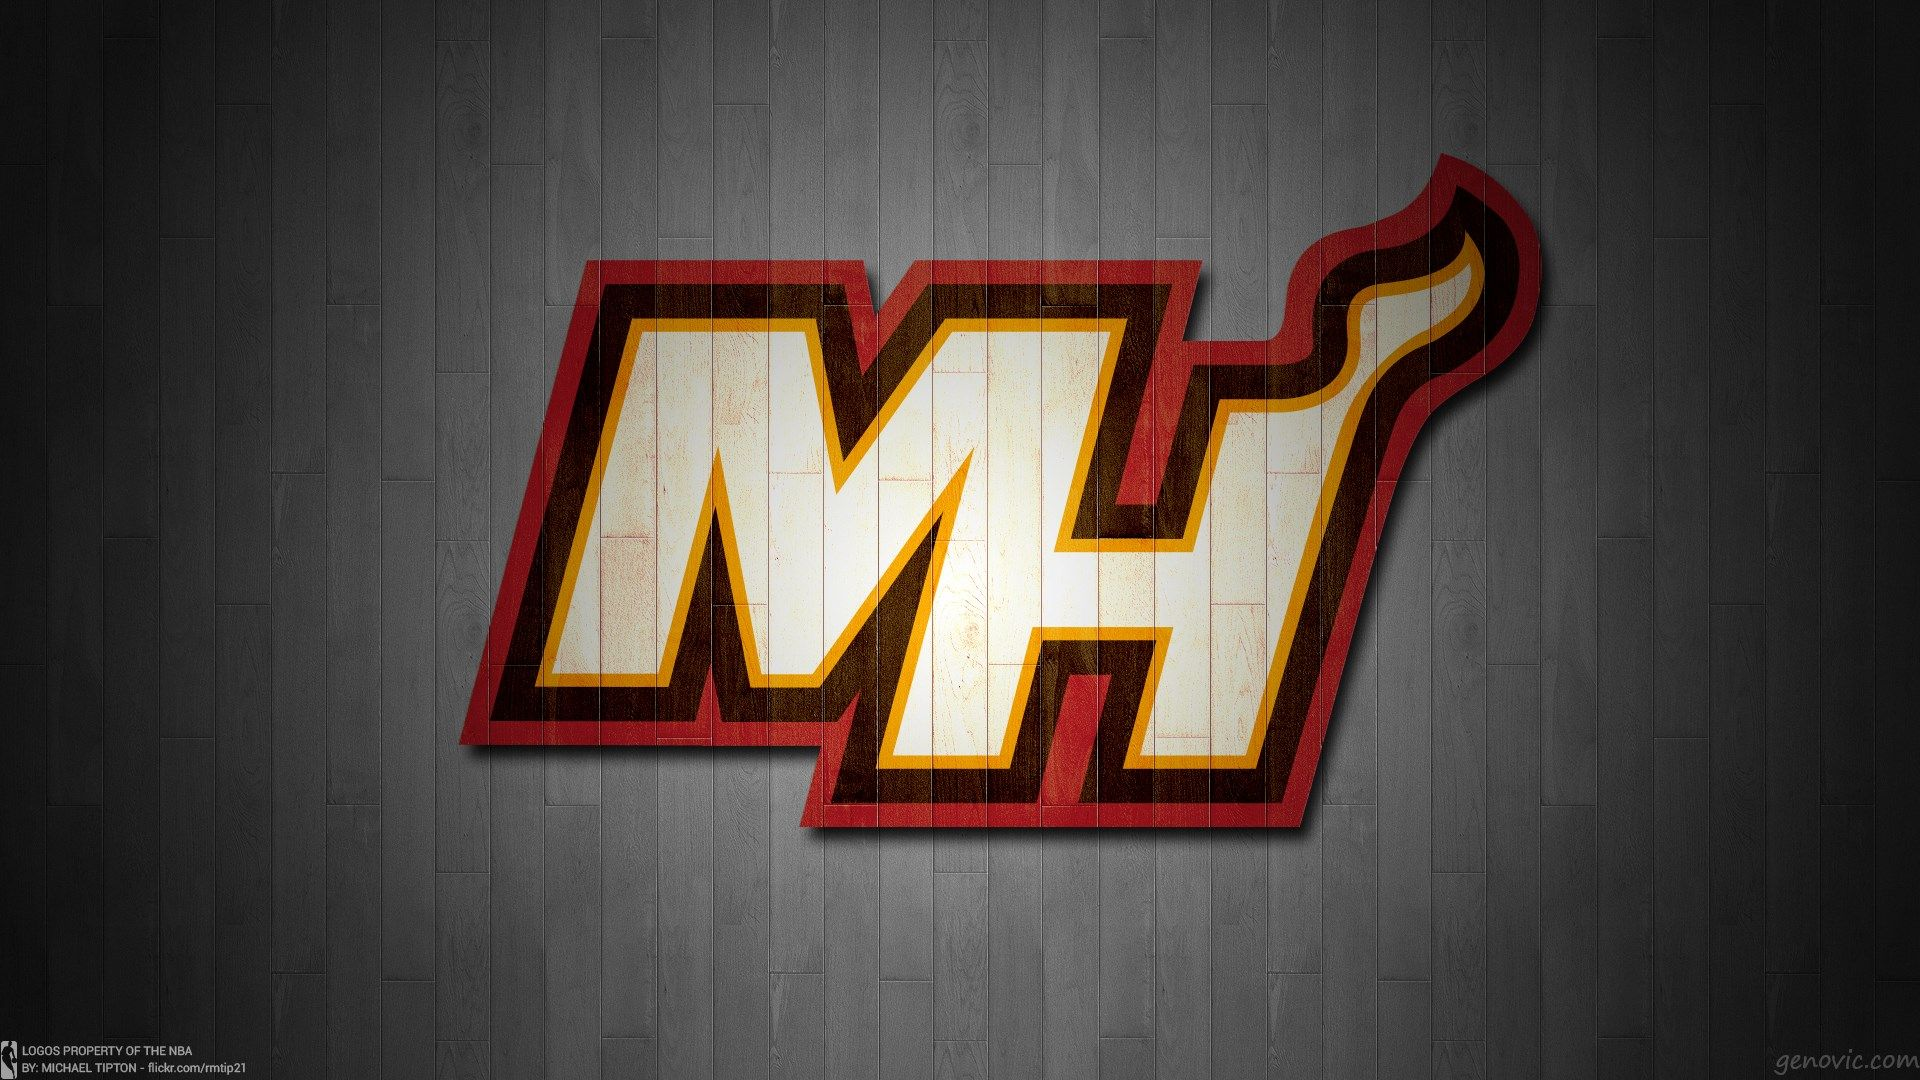 Backgrounds For Miami Heat Logo Black And White Wallpaper Miami Heat Miami Heat Logo Basketball Wallpaper